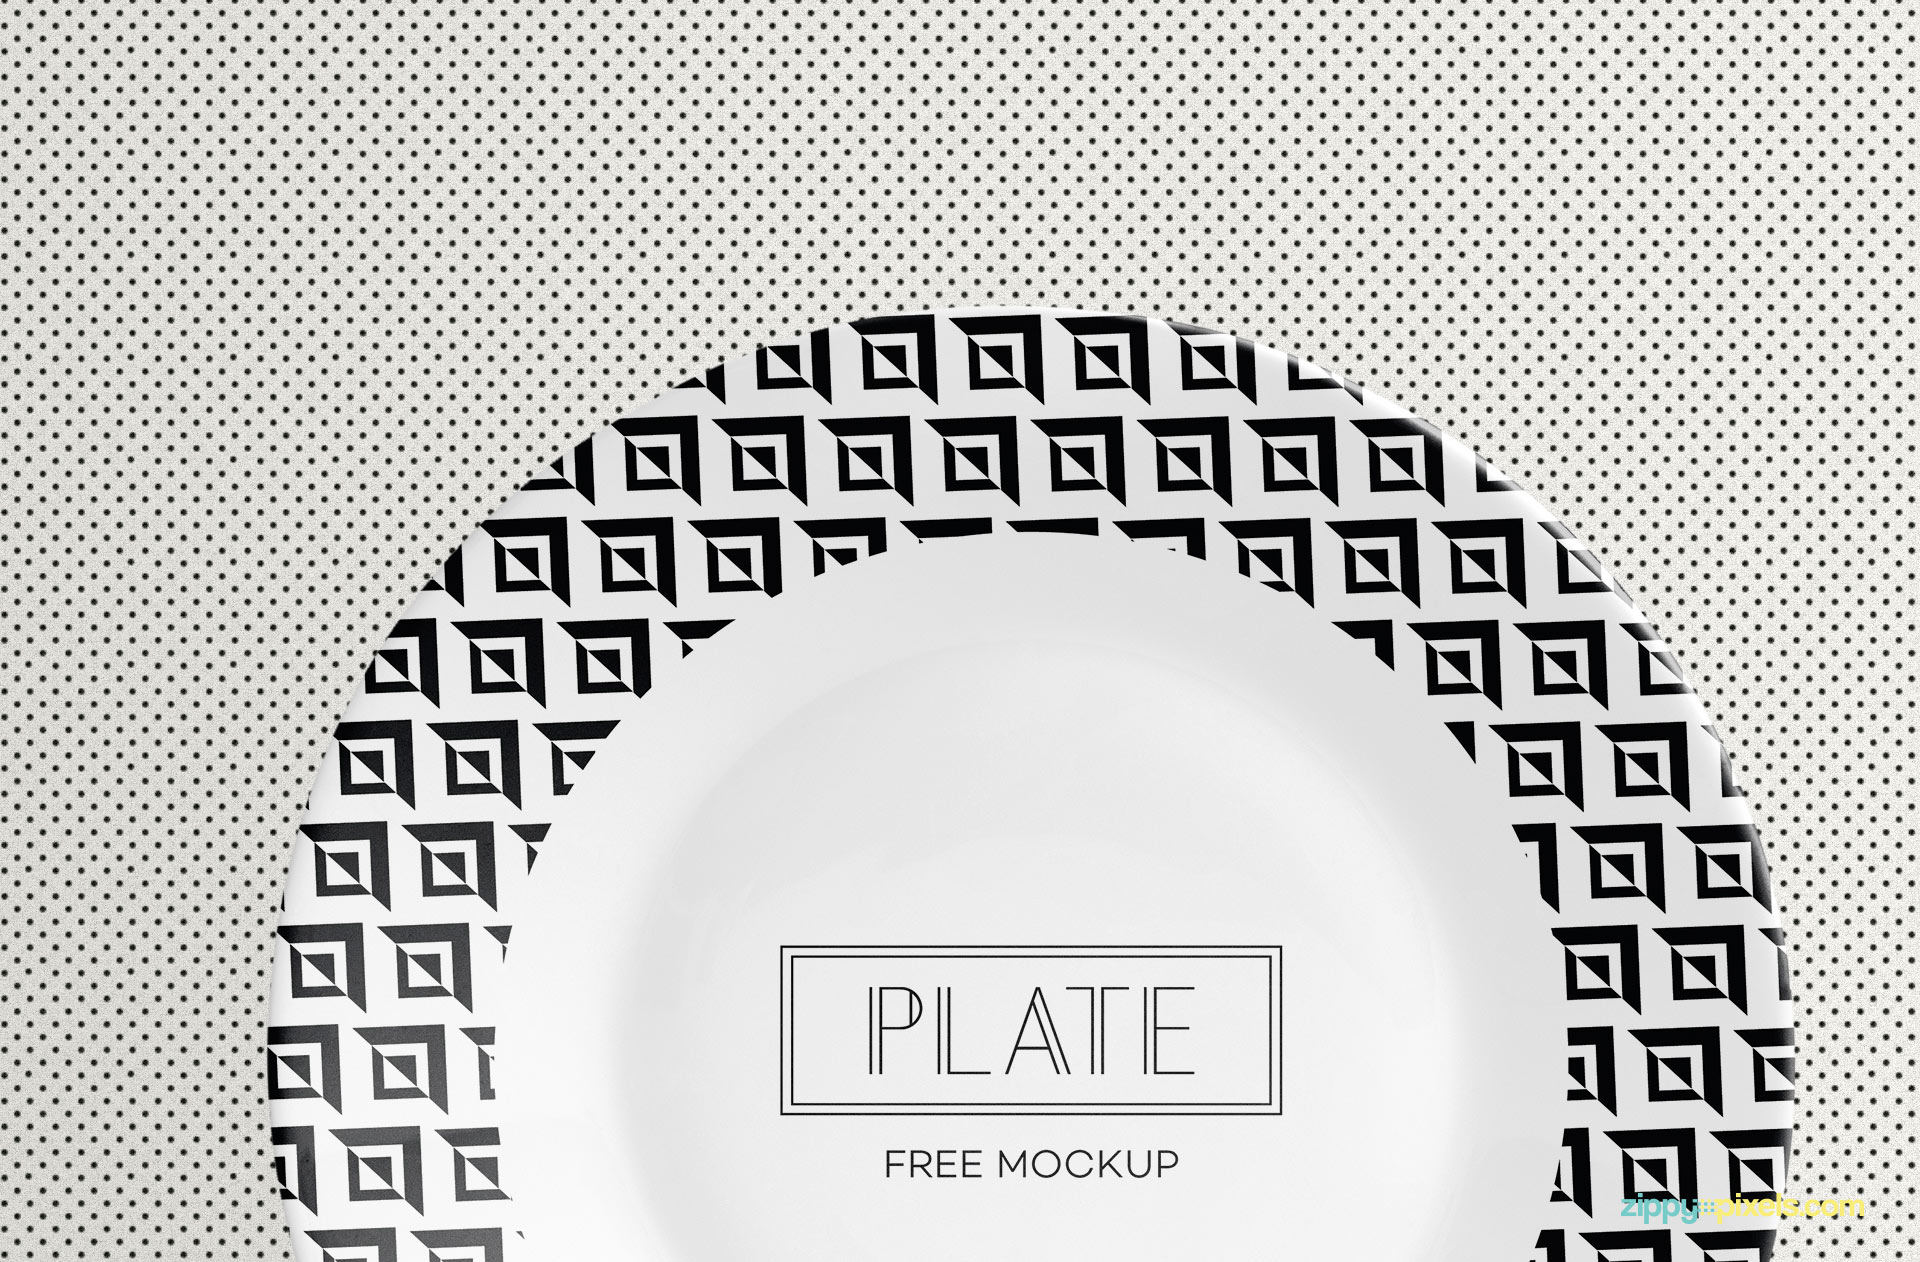 Use any design for this round shape mockup.